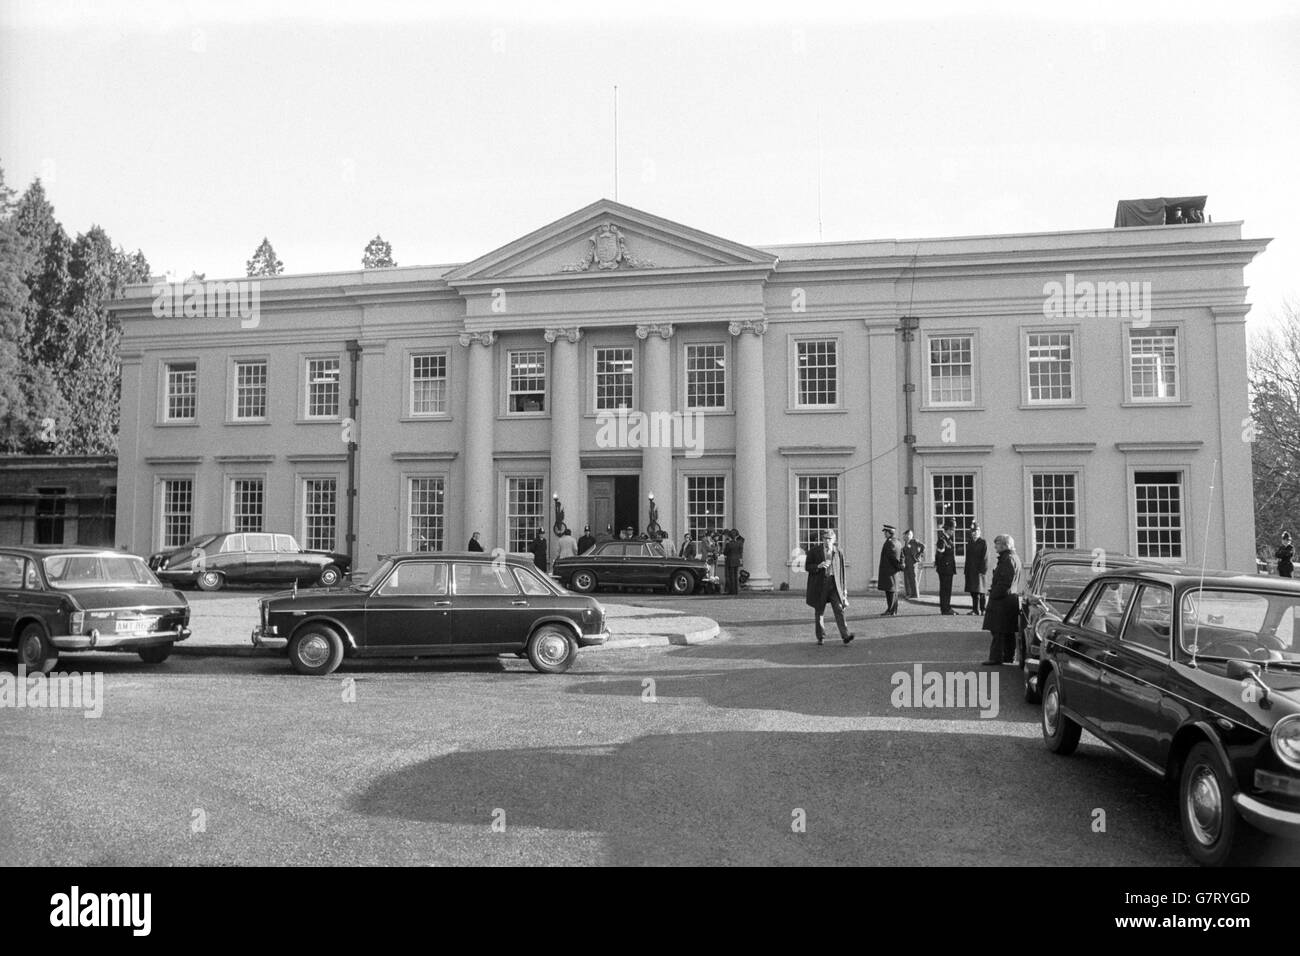 Police Service Of Northern Ireland Black And White Stock Photos